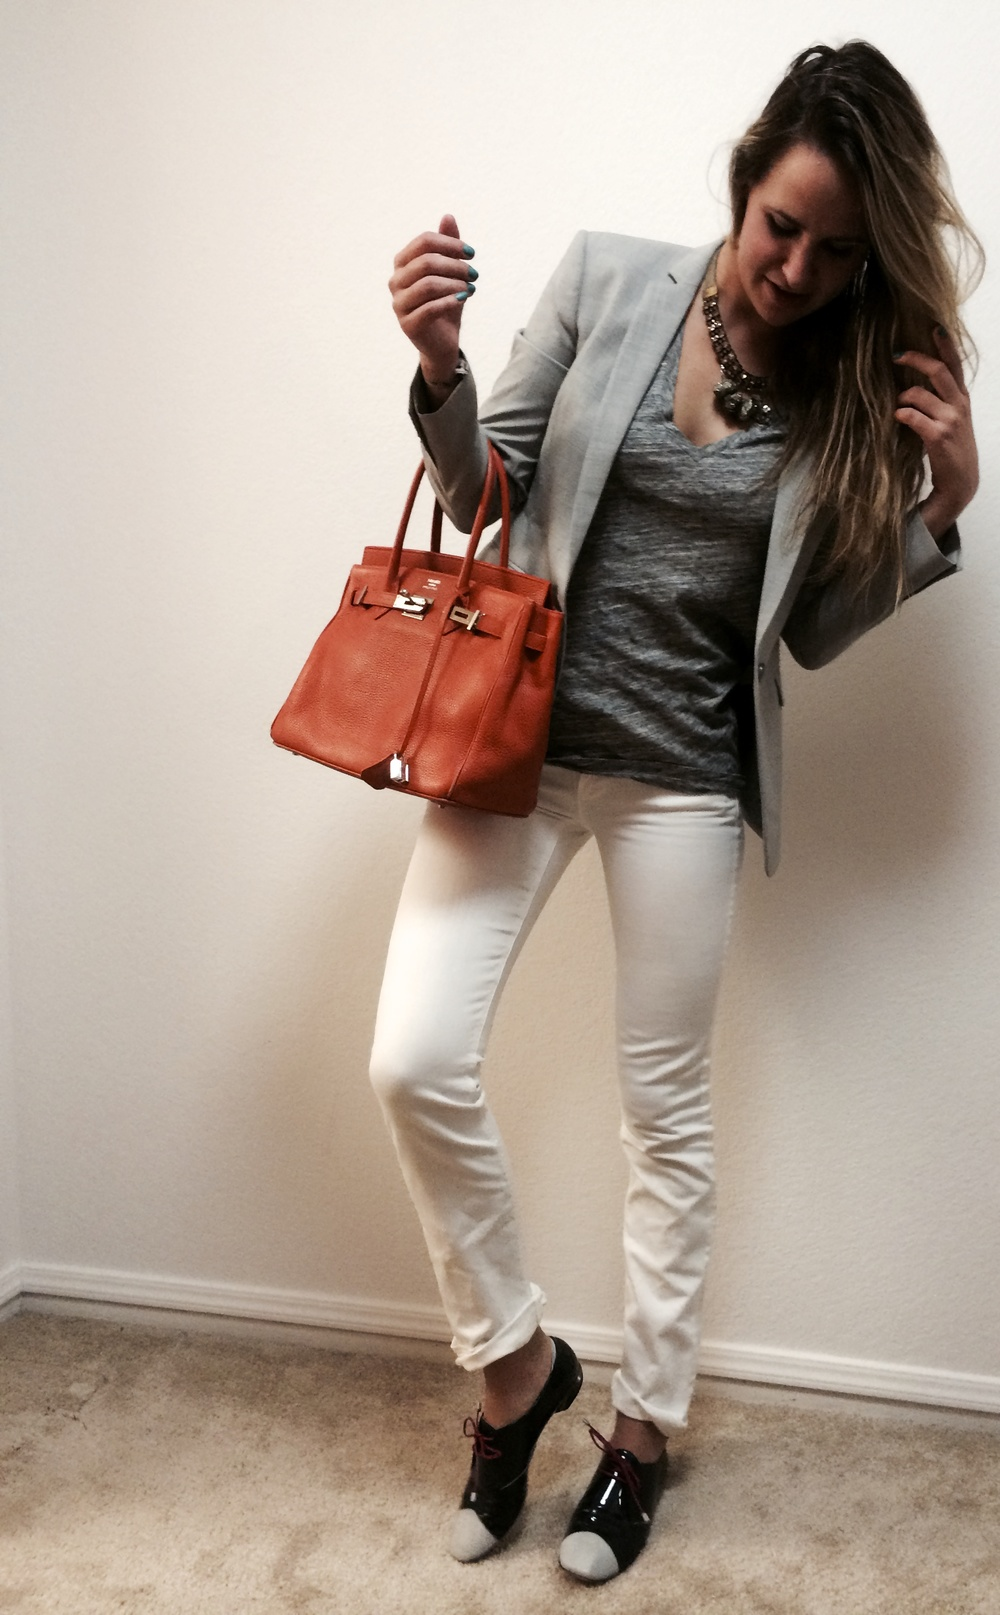 Blazer: Theory; Heather V-Neck, Gold Necklace & White Jeans: J.Crew; Rock Necklace: Urban Outfitters; Purse: Hermes Birkin Bag 25cm; Patent Leather Oxfords: Nicholas Kirkwood; All photos by: Kristine Constantino